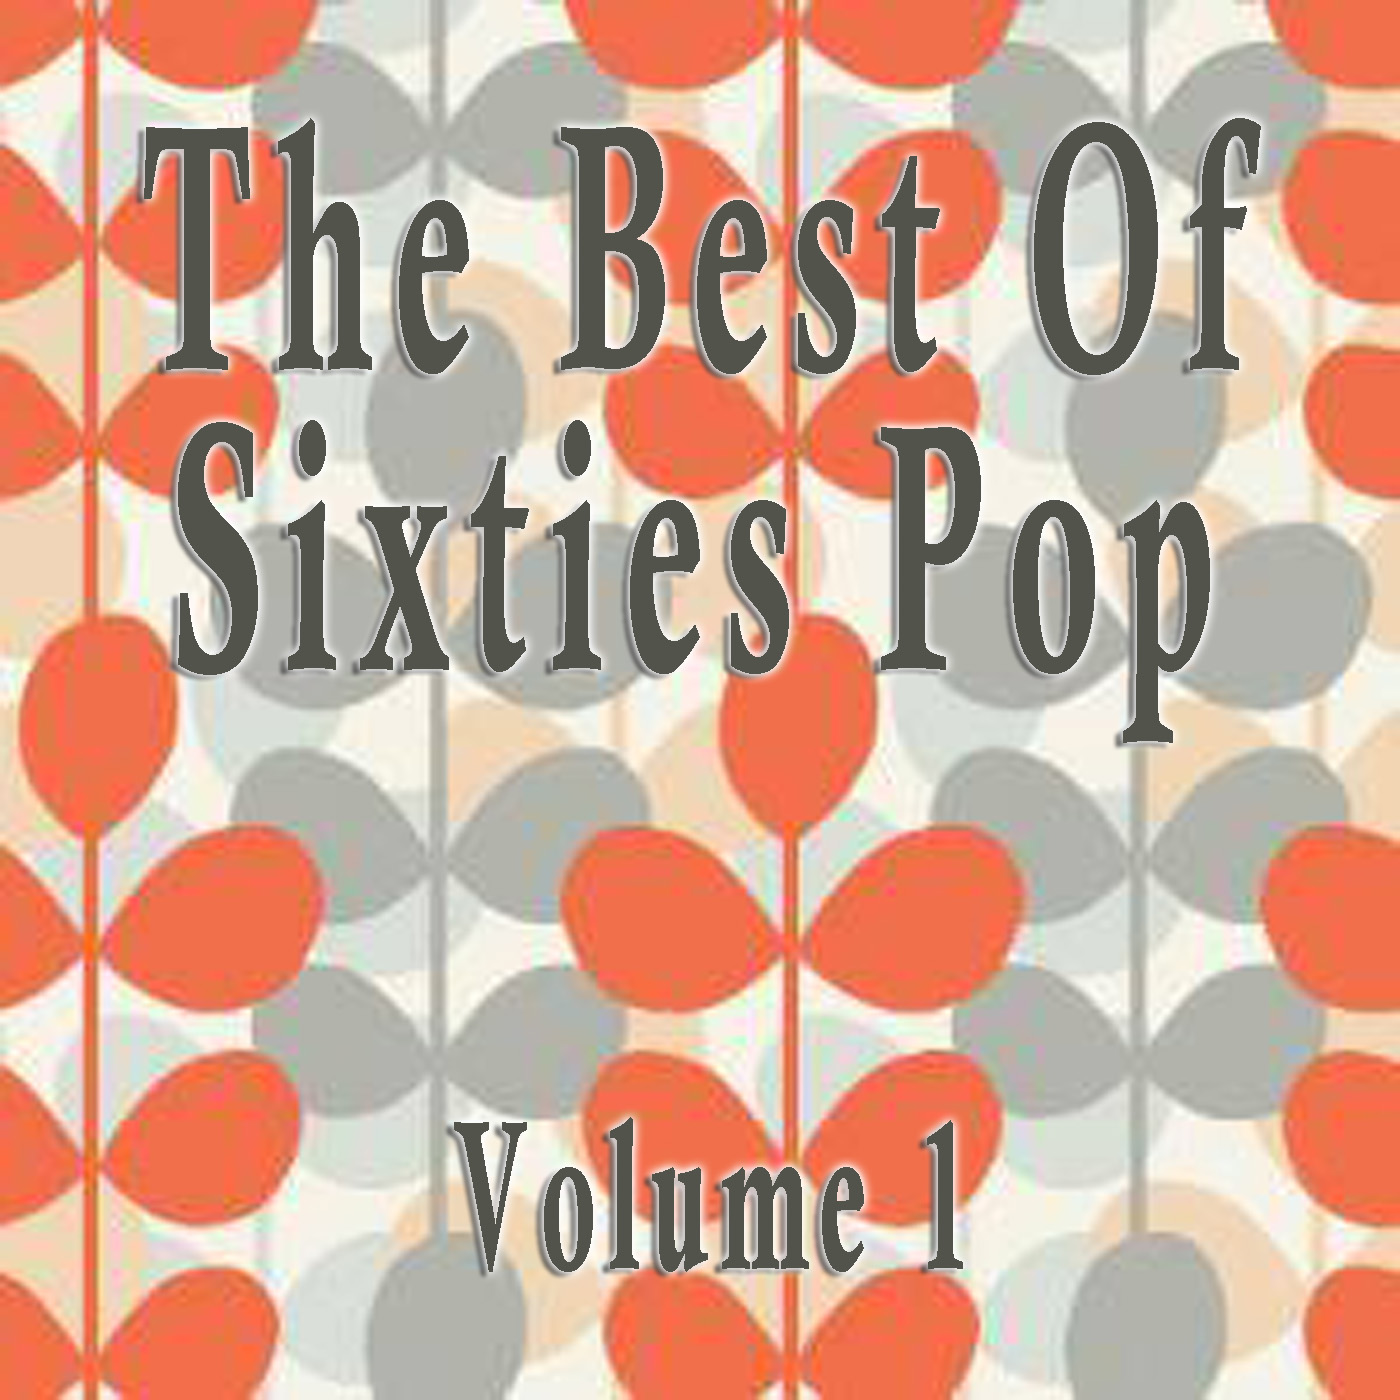 The best of sixties pop